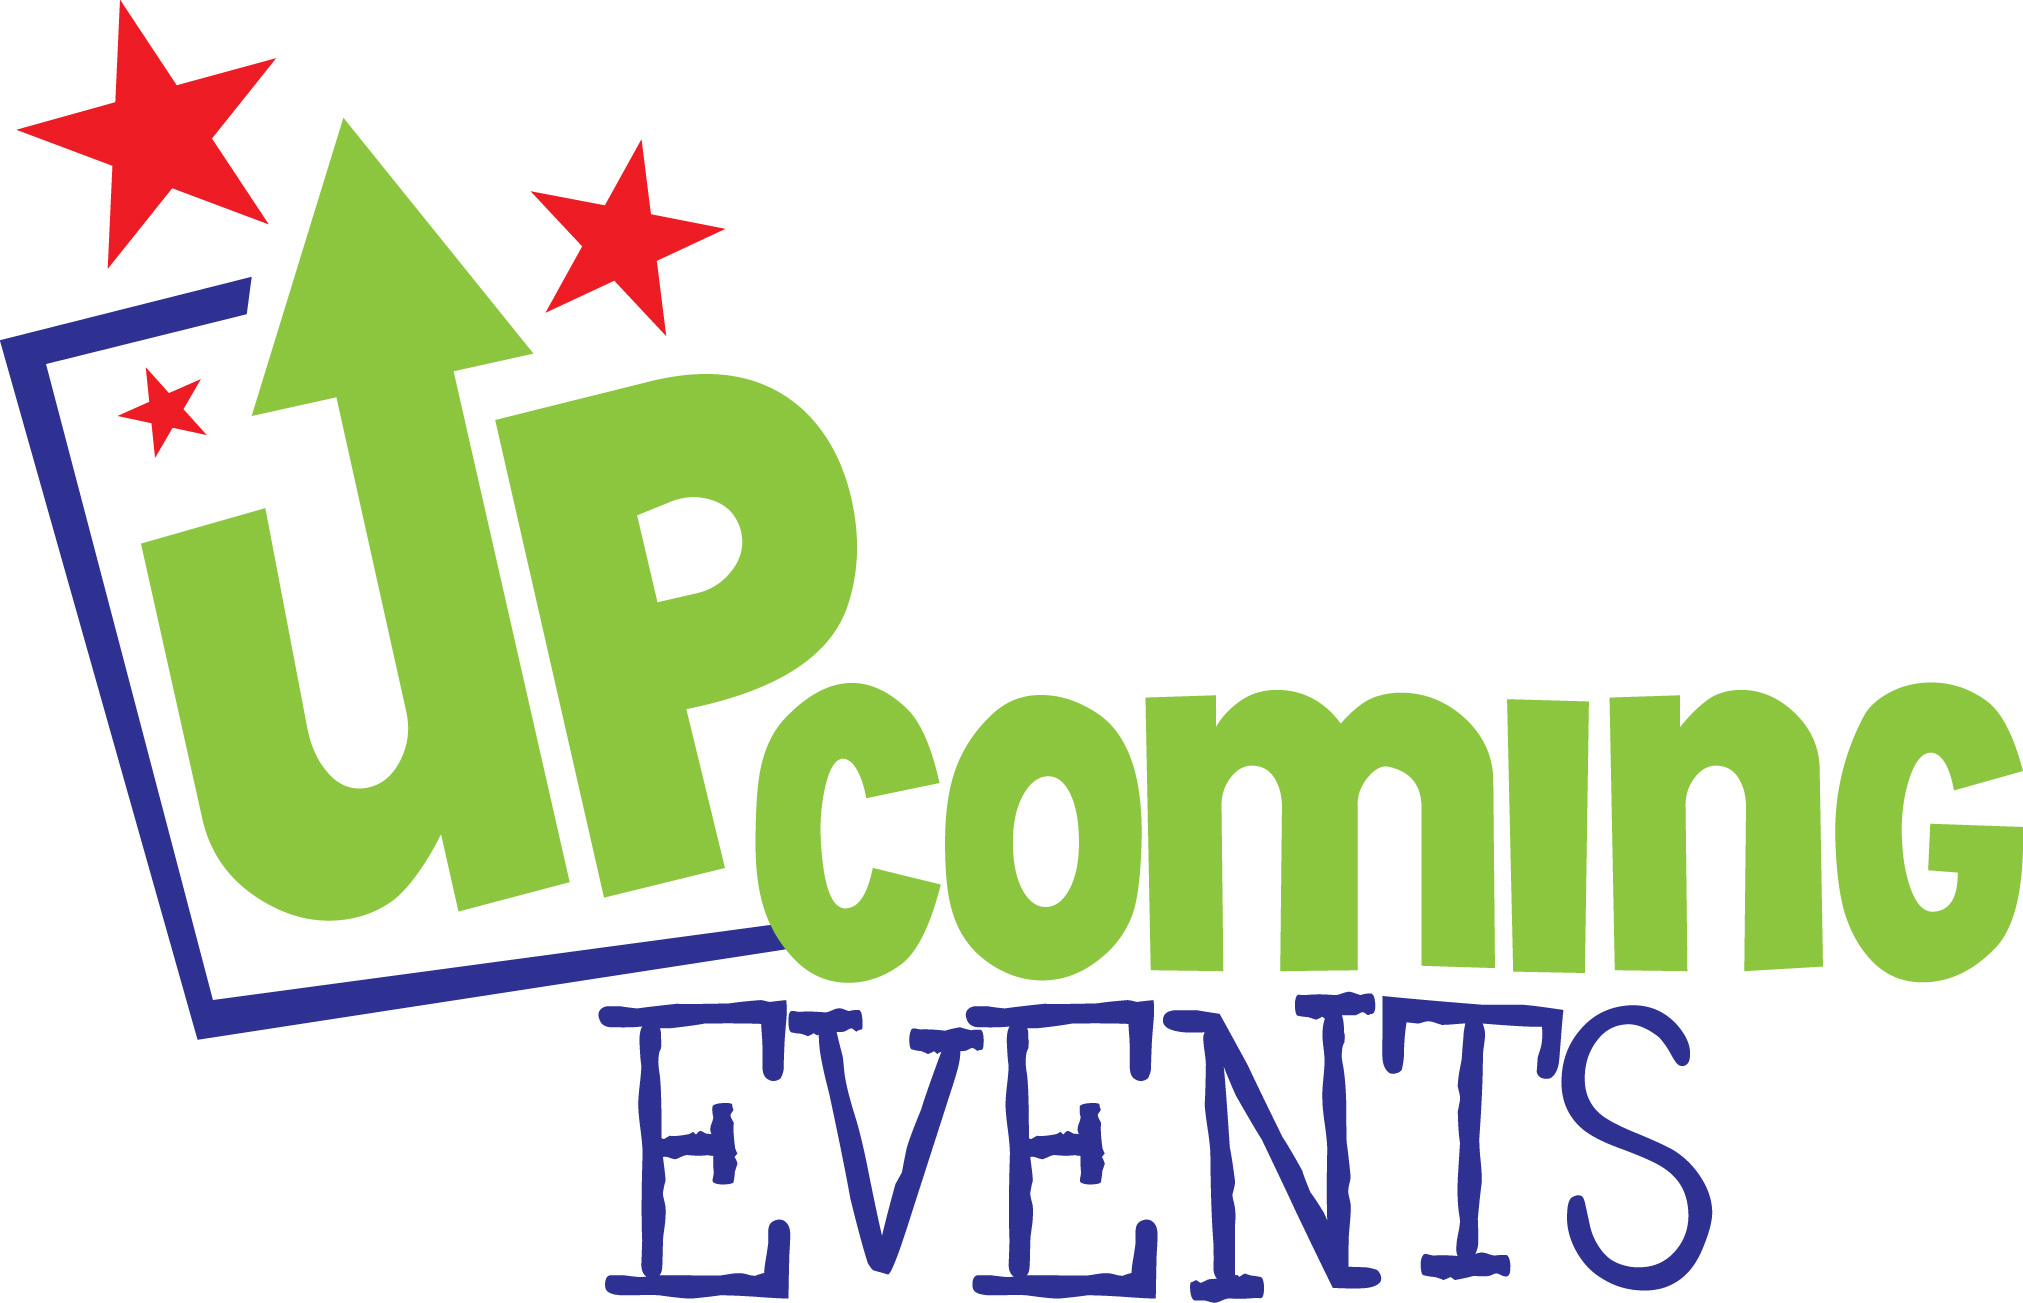 Upcomingevents Clipart